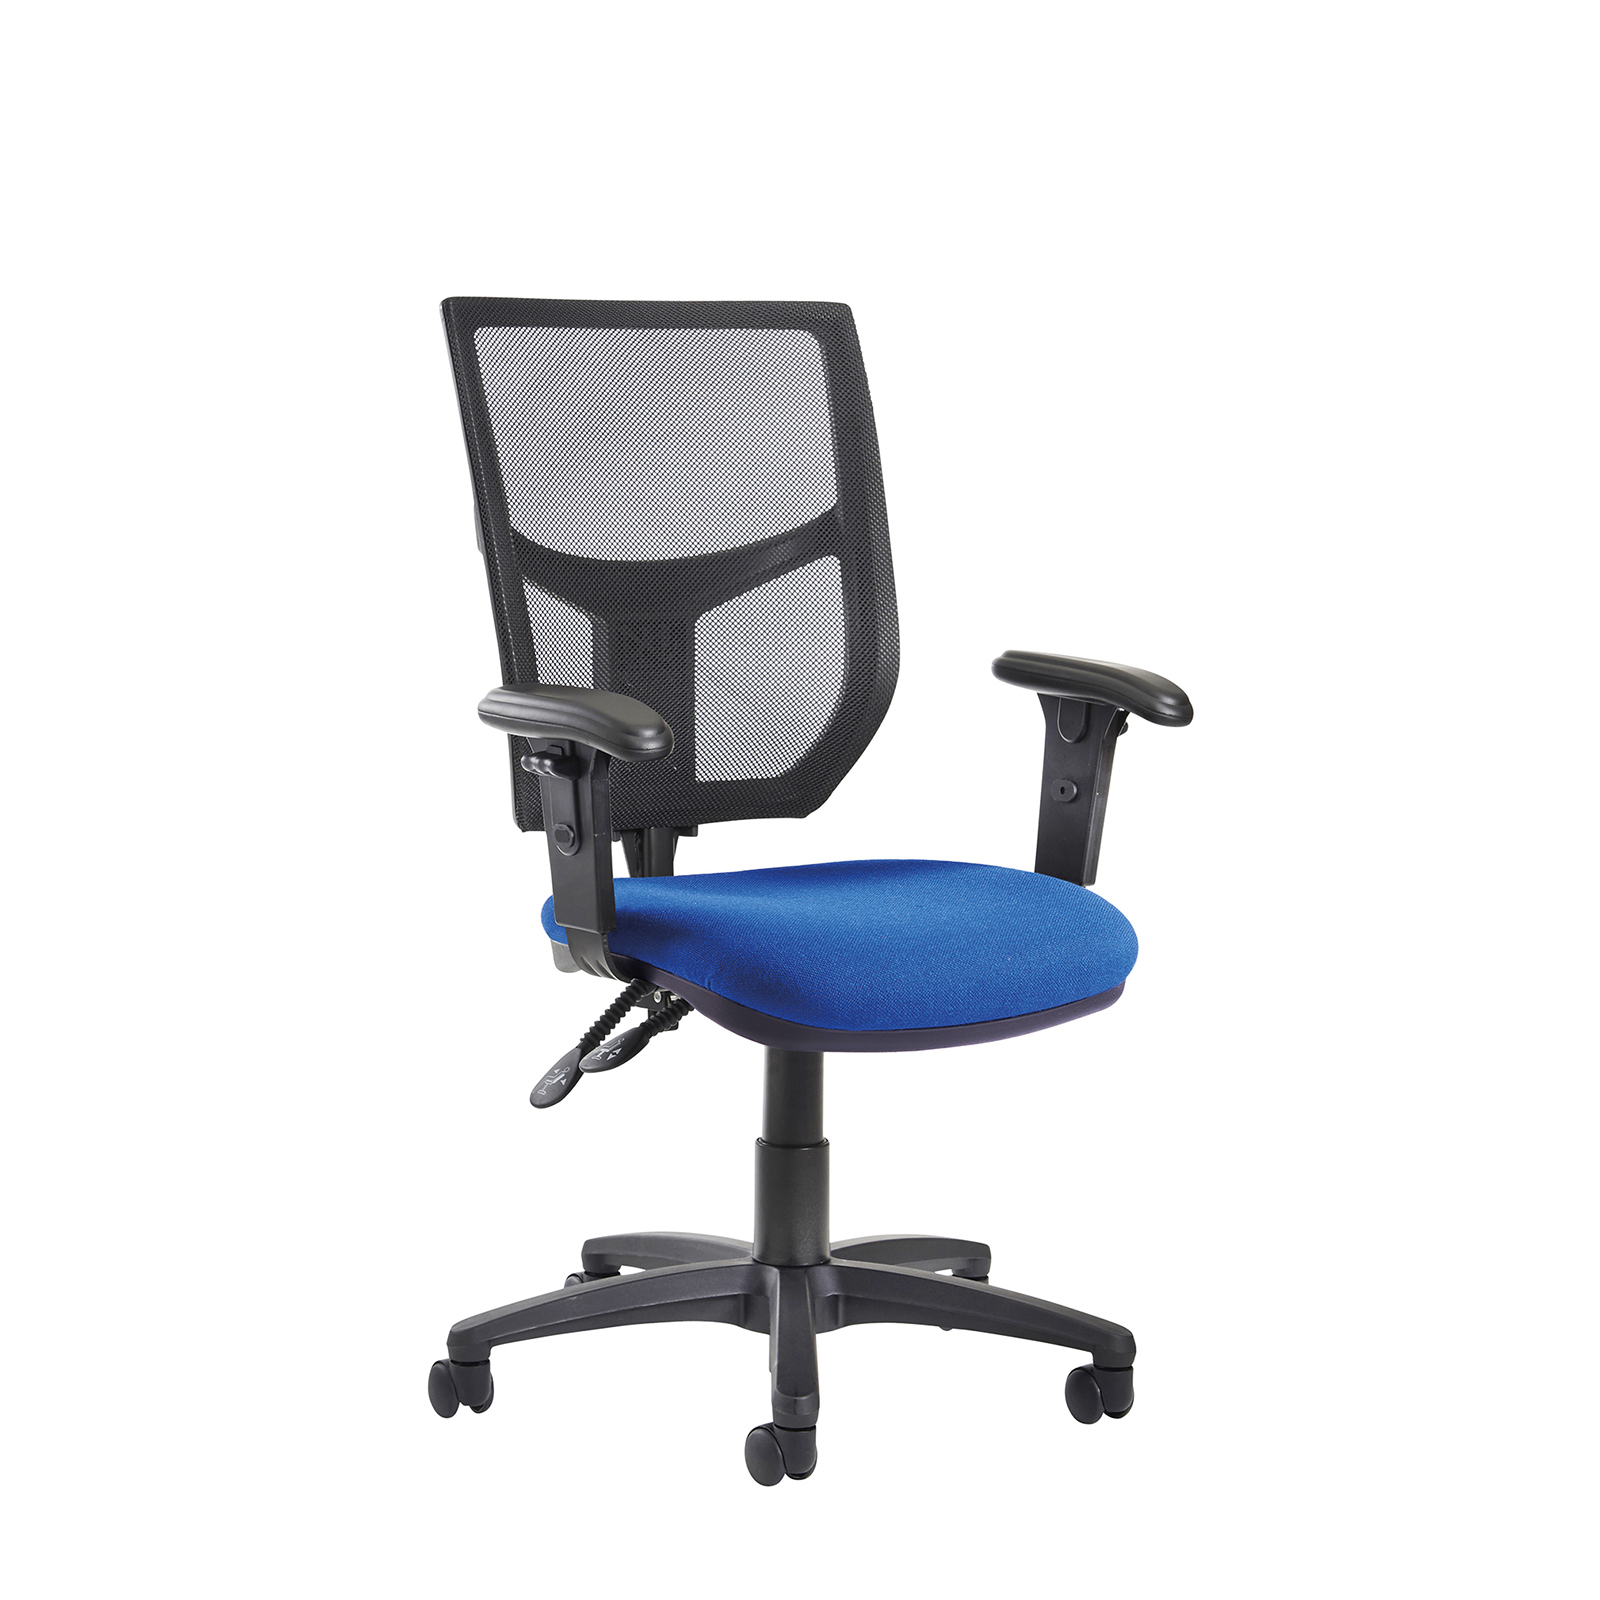 Chairs Altino 2 lever high mesh back operators chair with adjustable arms - blue